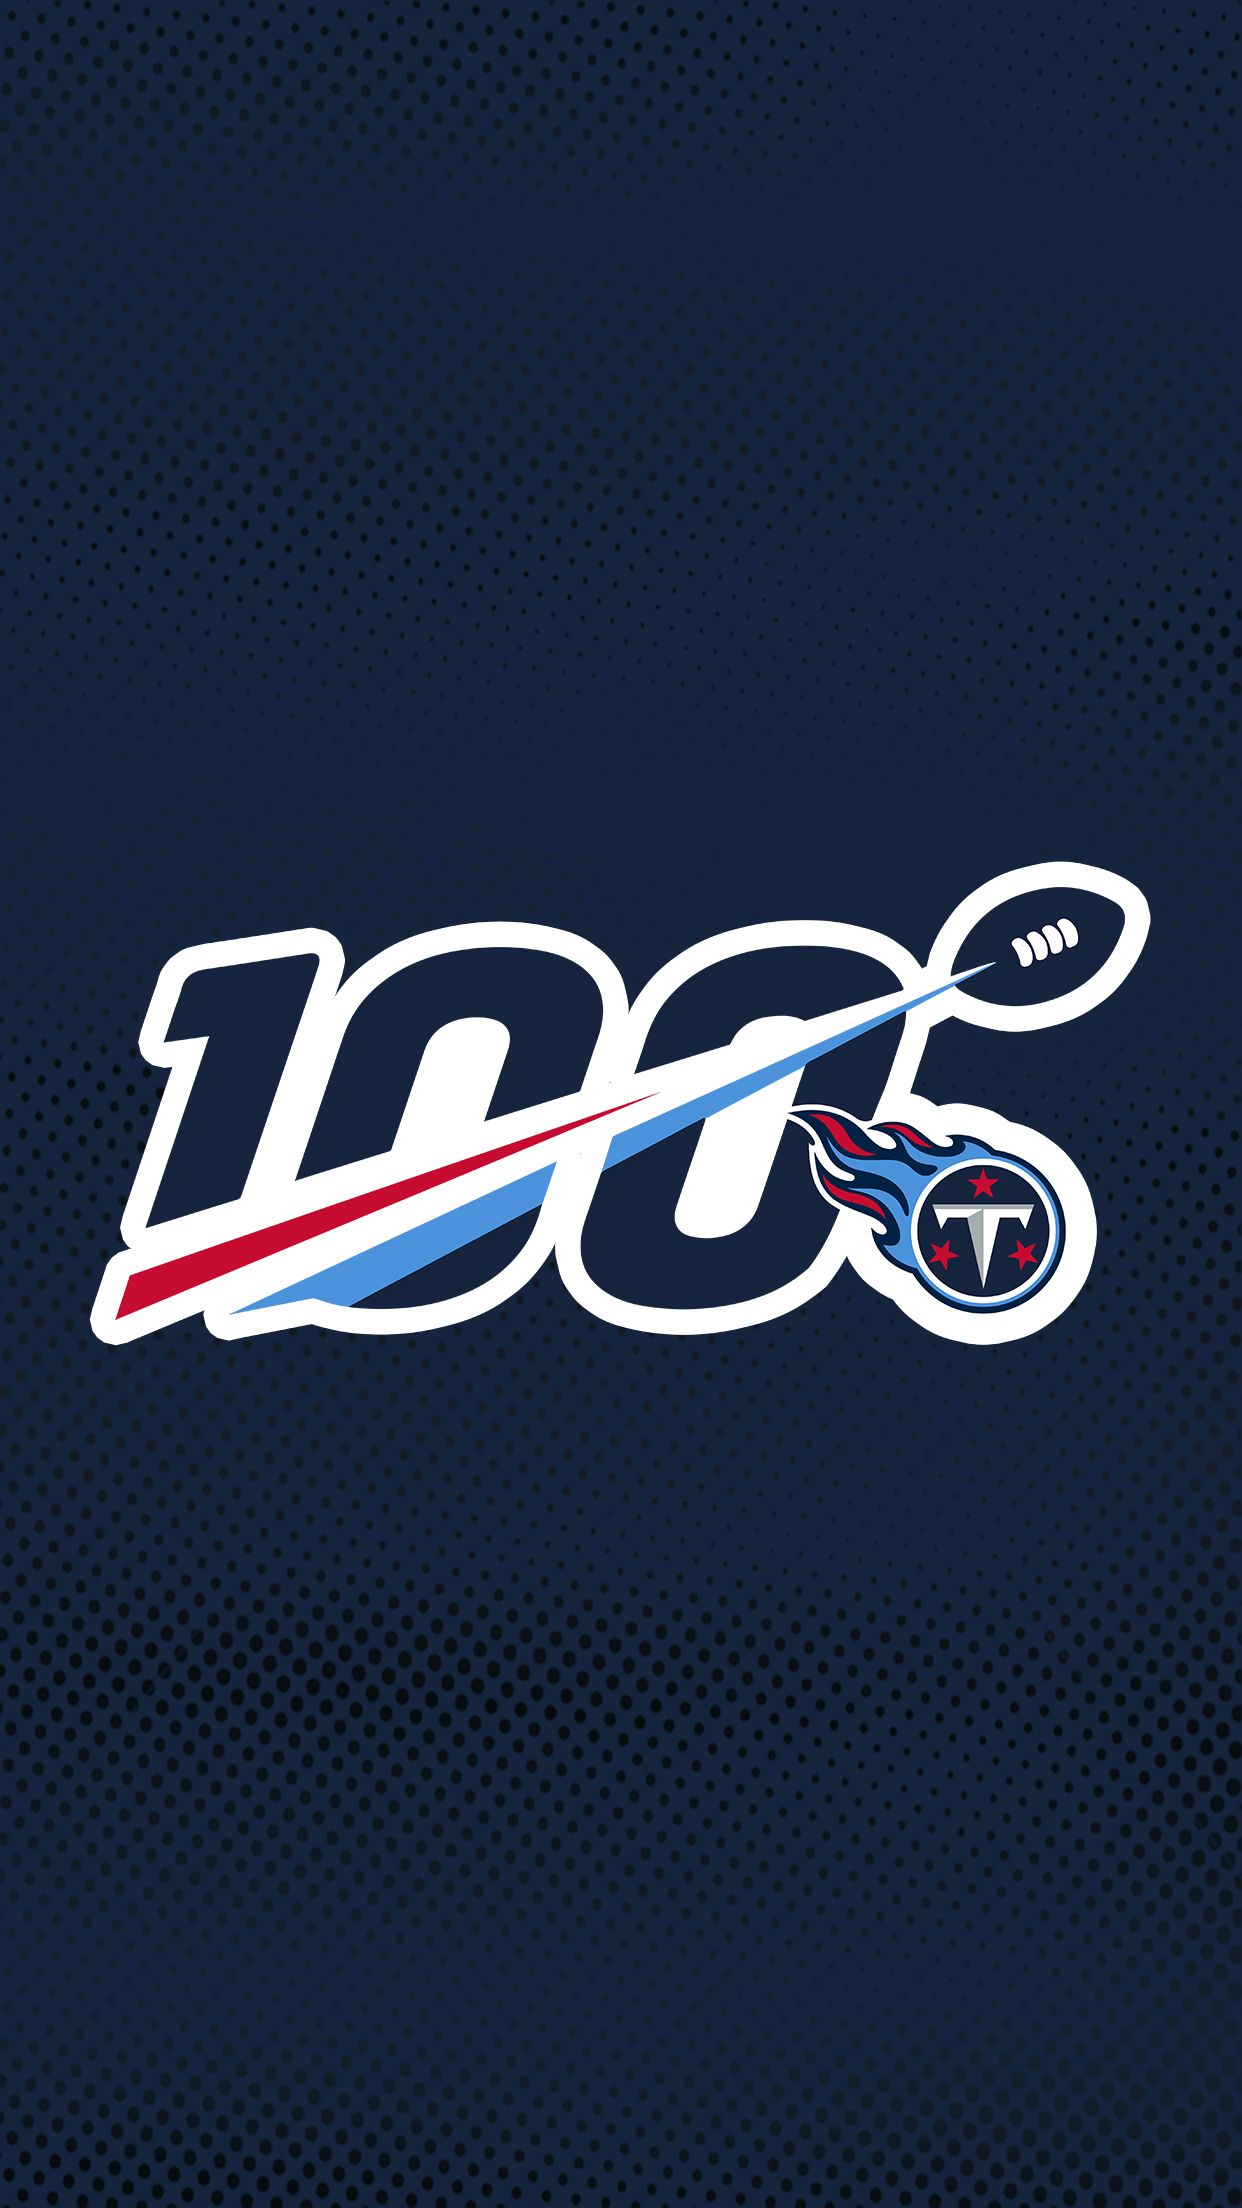 Pin by Josh on NFL in 2020 Titans football, Nfl logo, Nfl